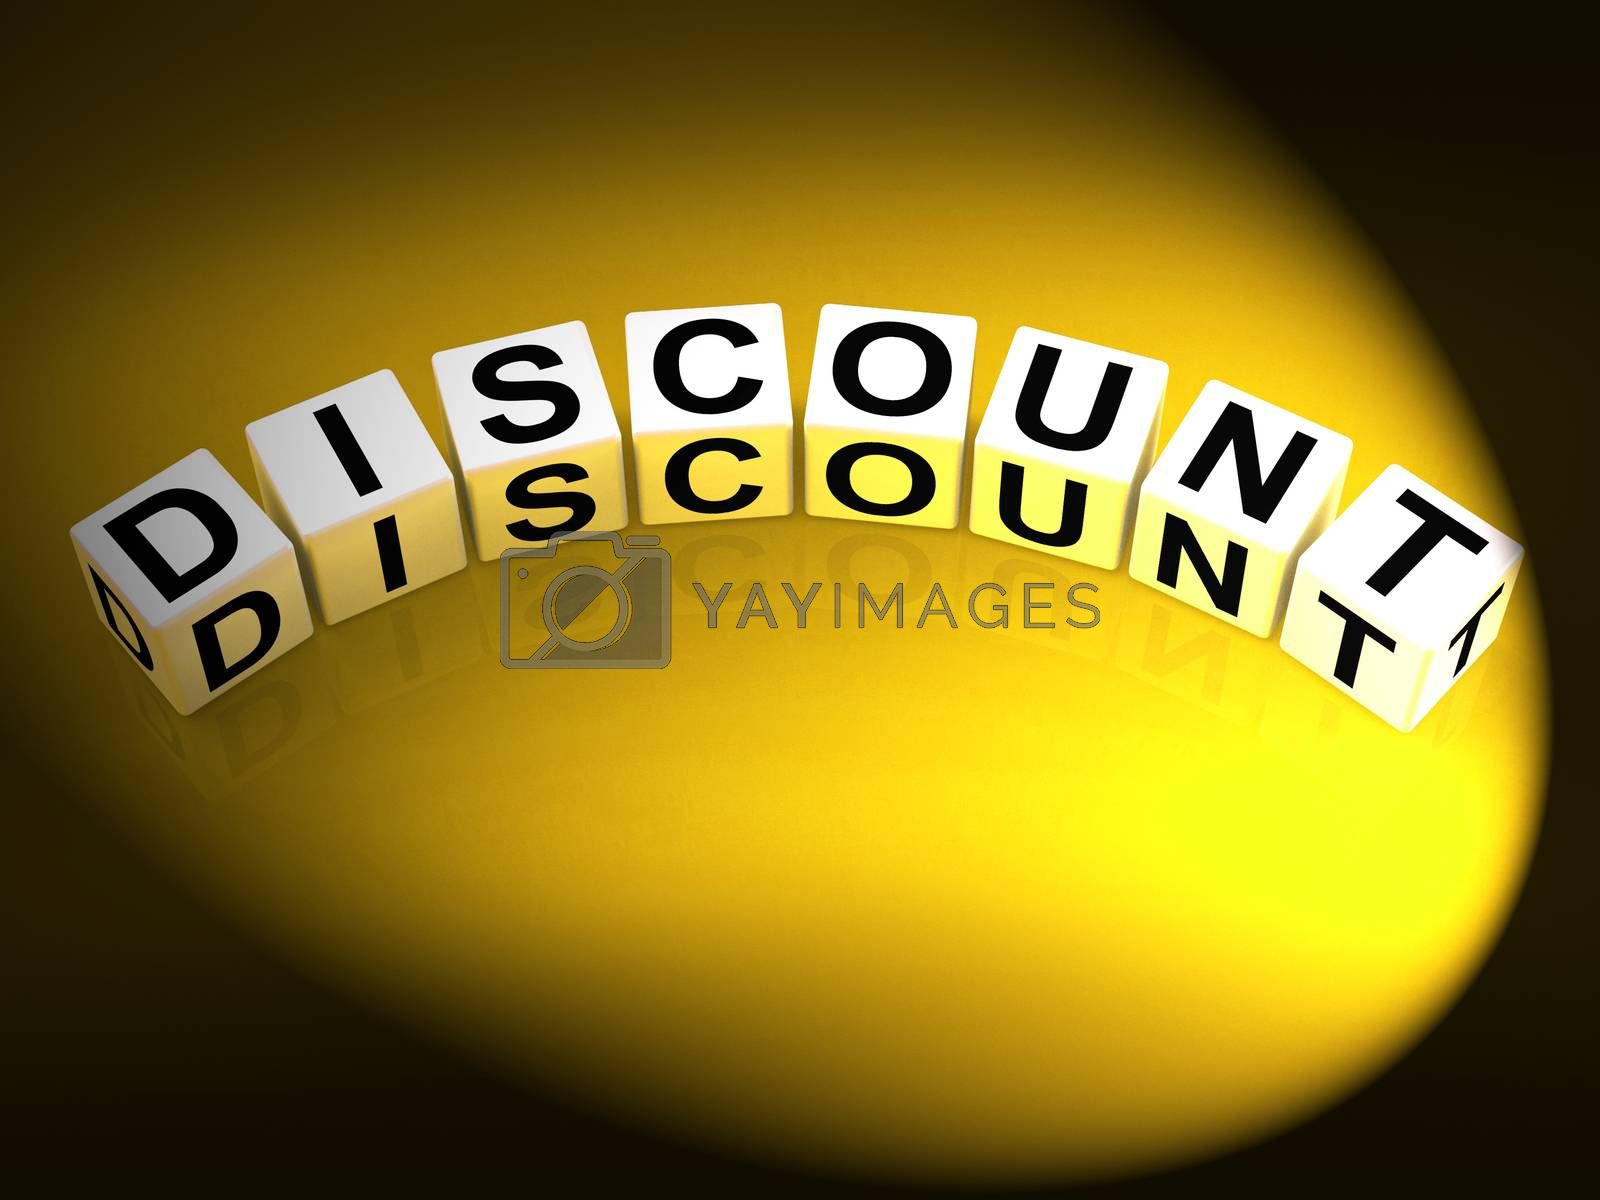 Discount Dice Show Discounts Reductions and Percent Off by stuartmiles